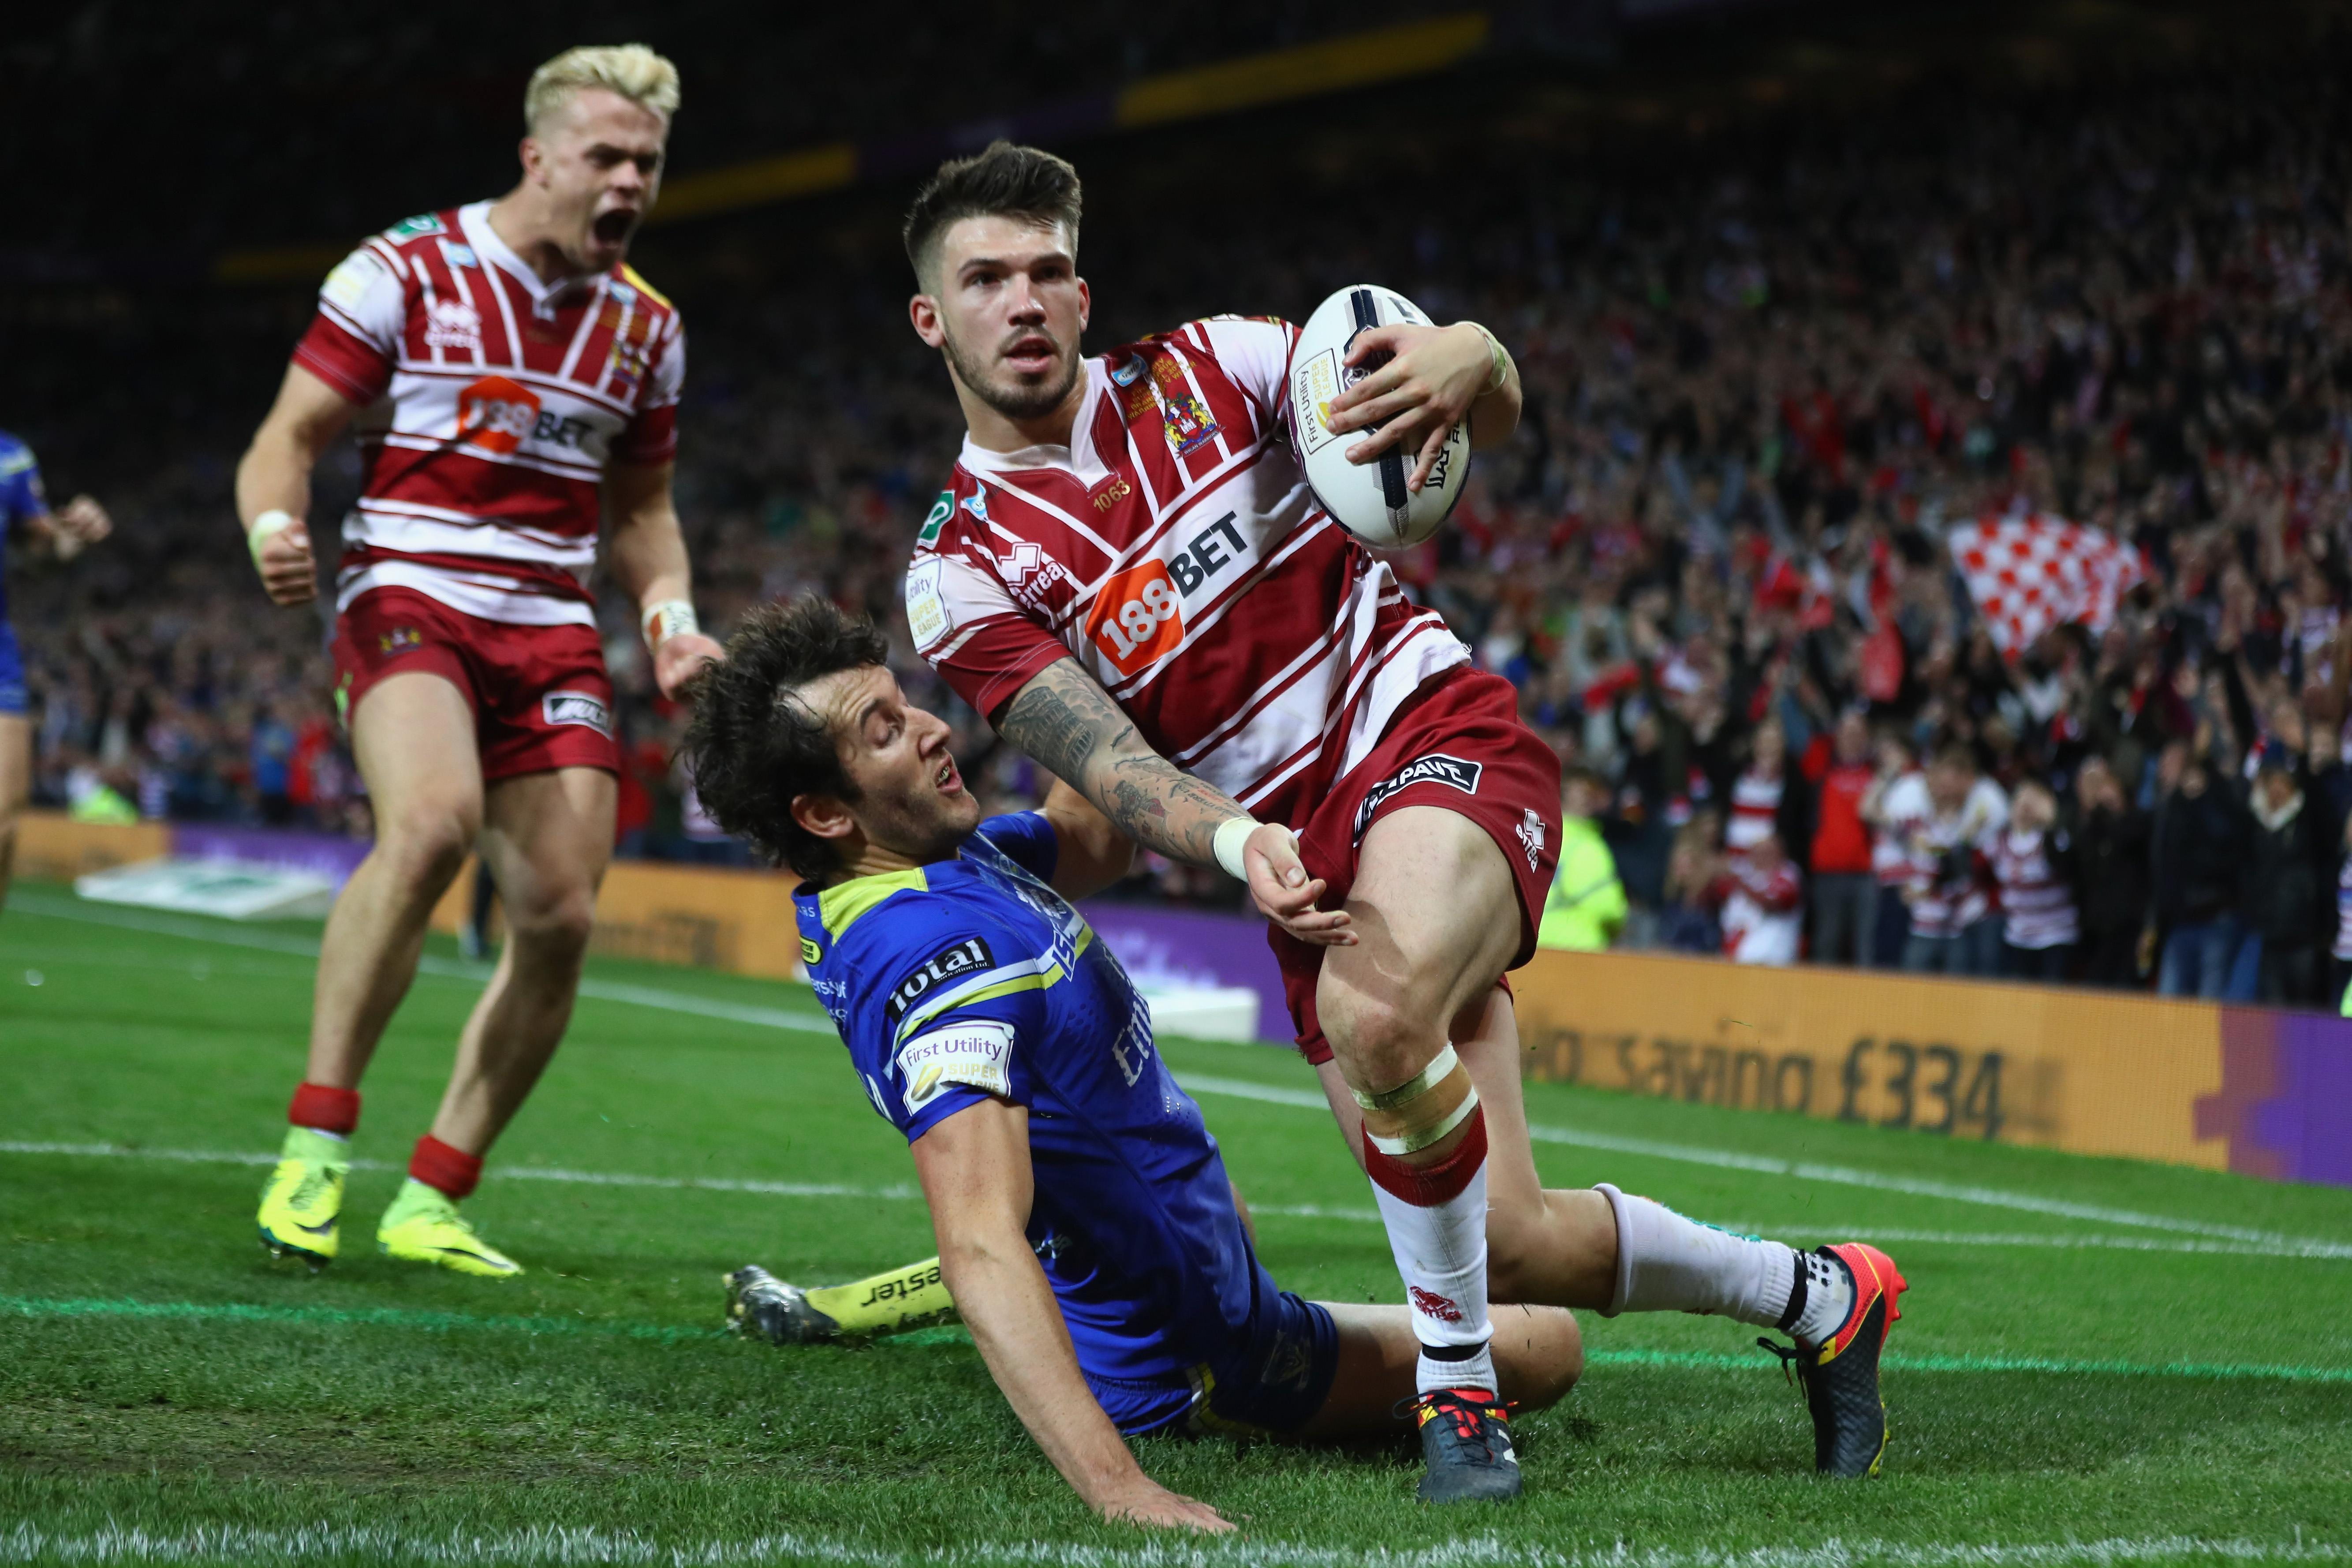 Oliver Gildart is wanted by NRL side Wests Tigers